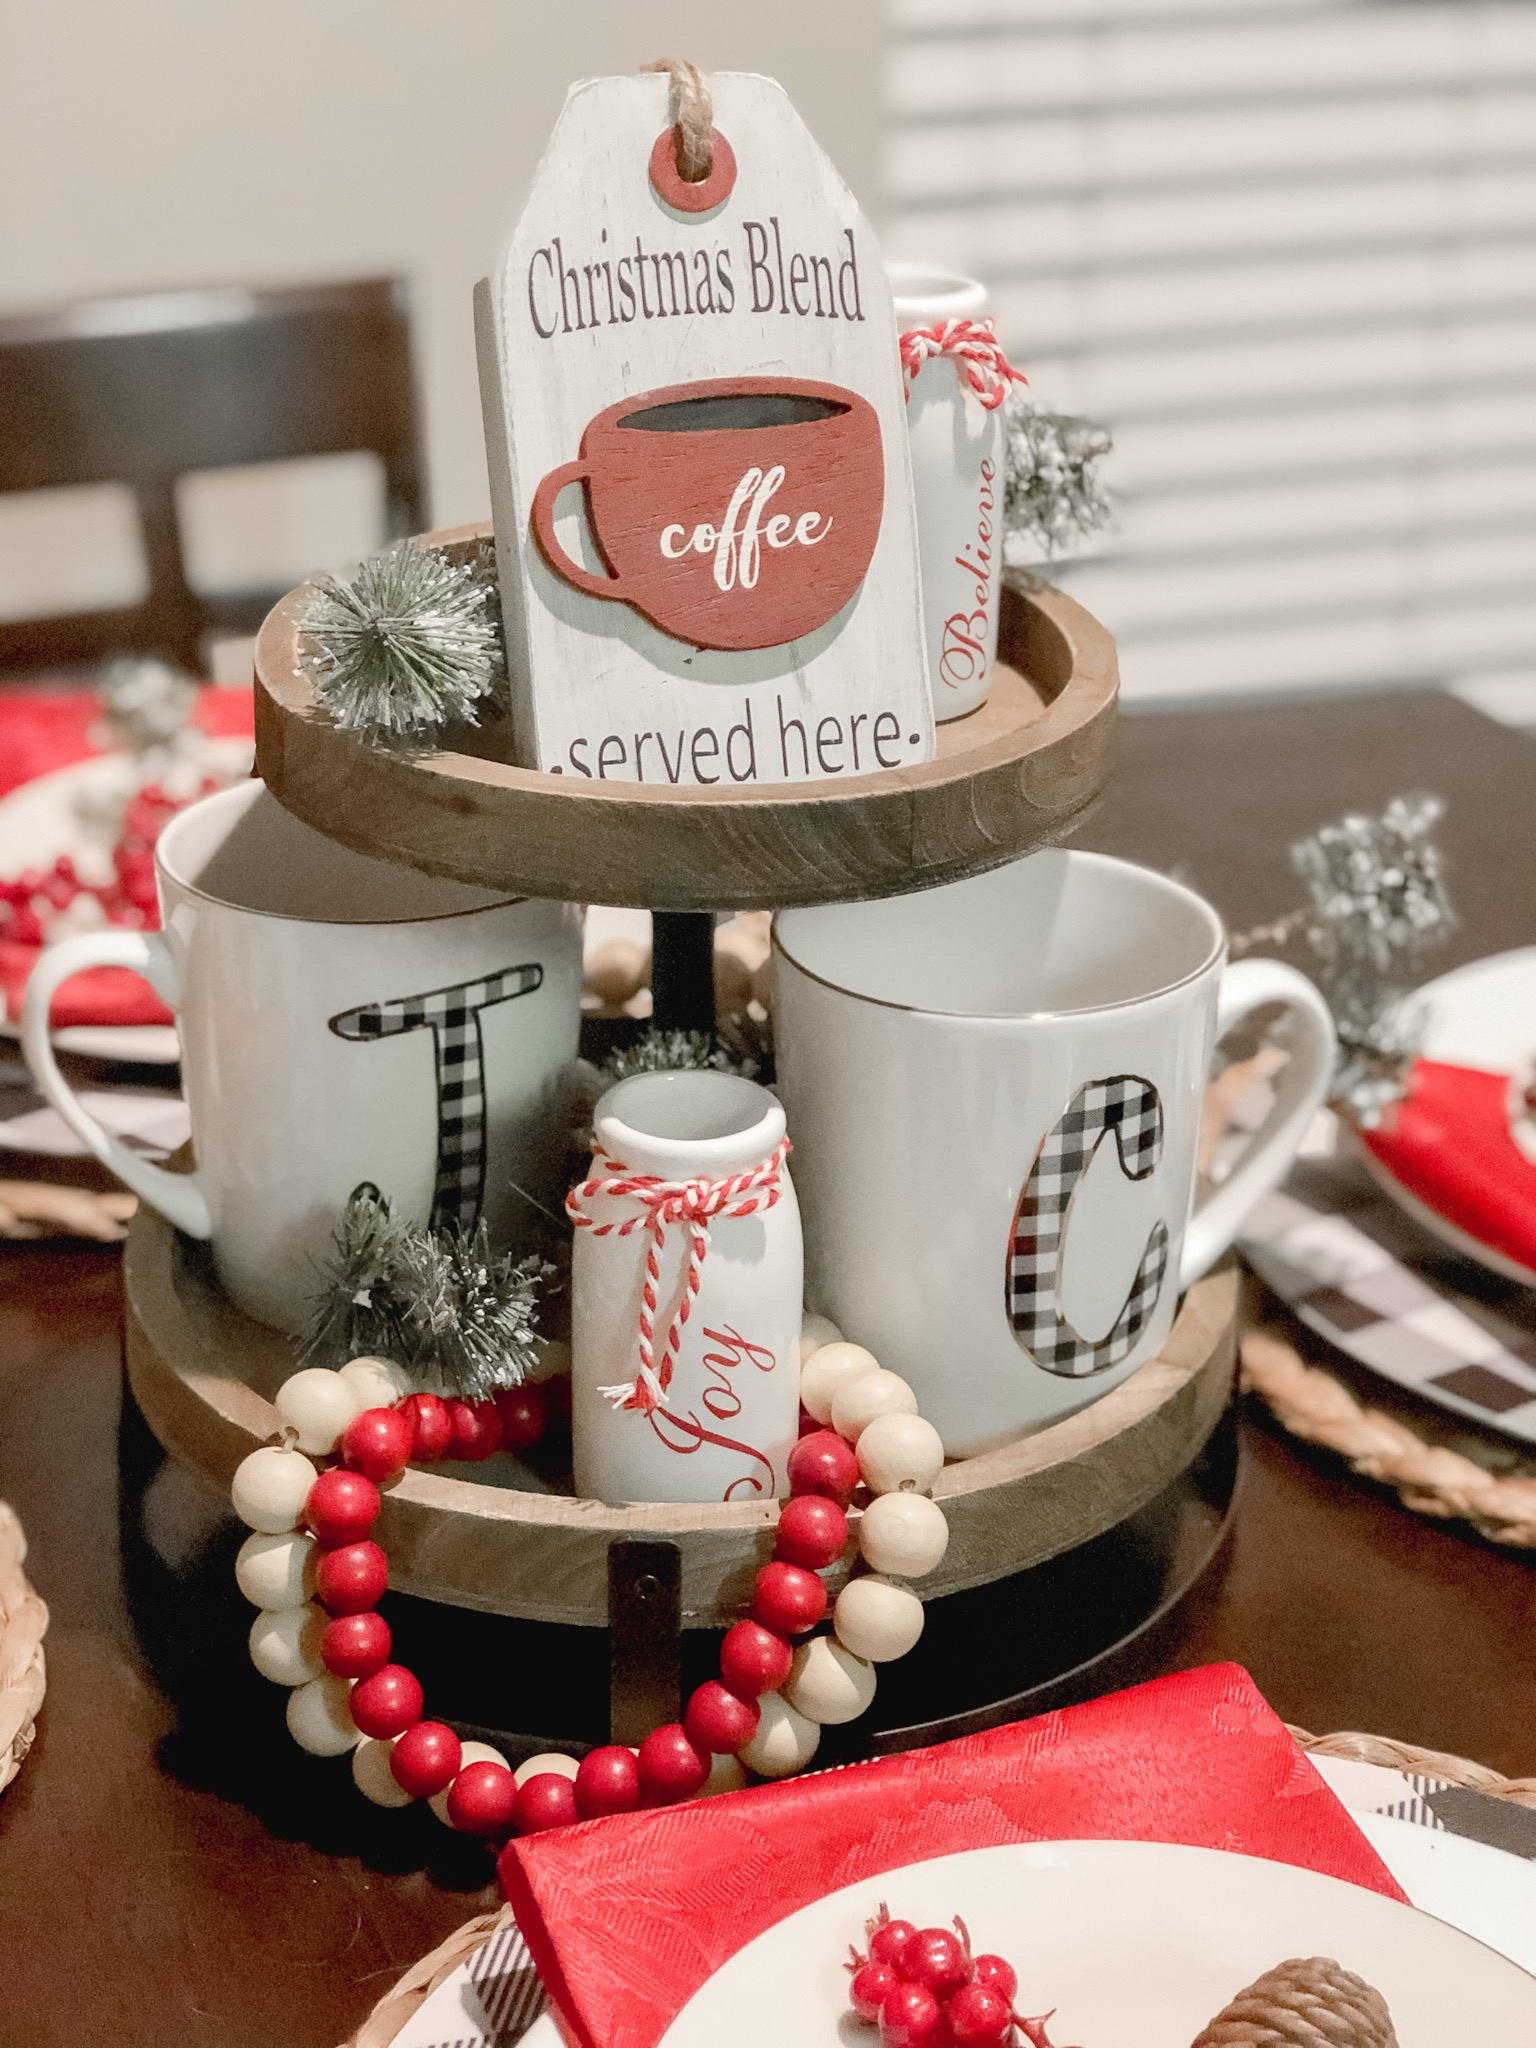 My Home Decor This Holiday Season | Chaos and Coffee